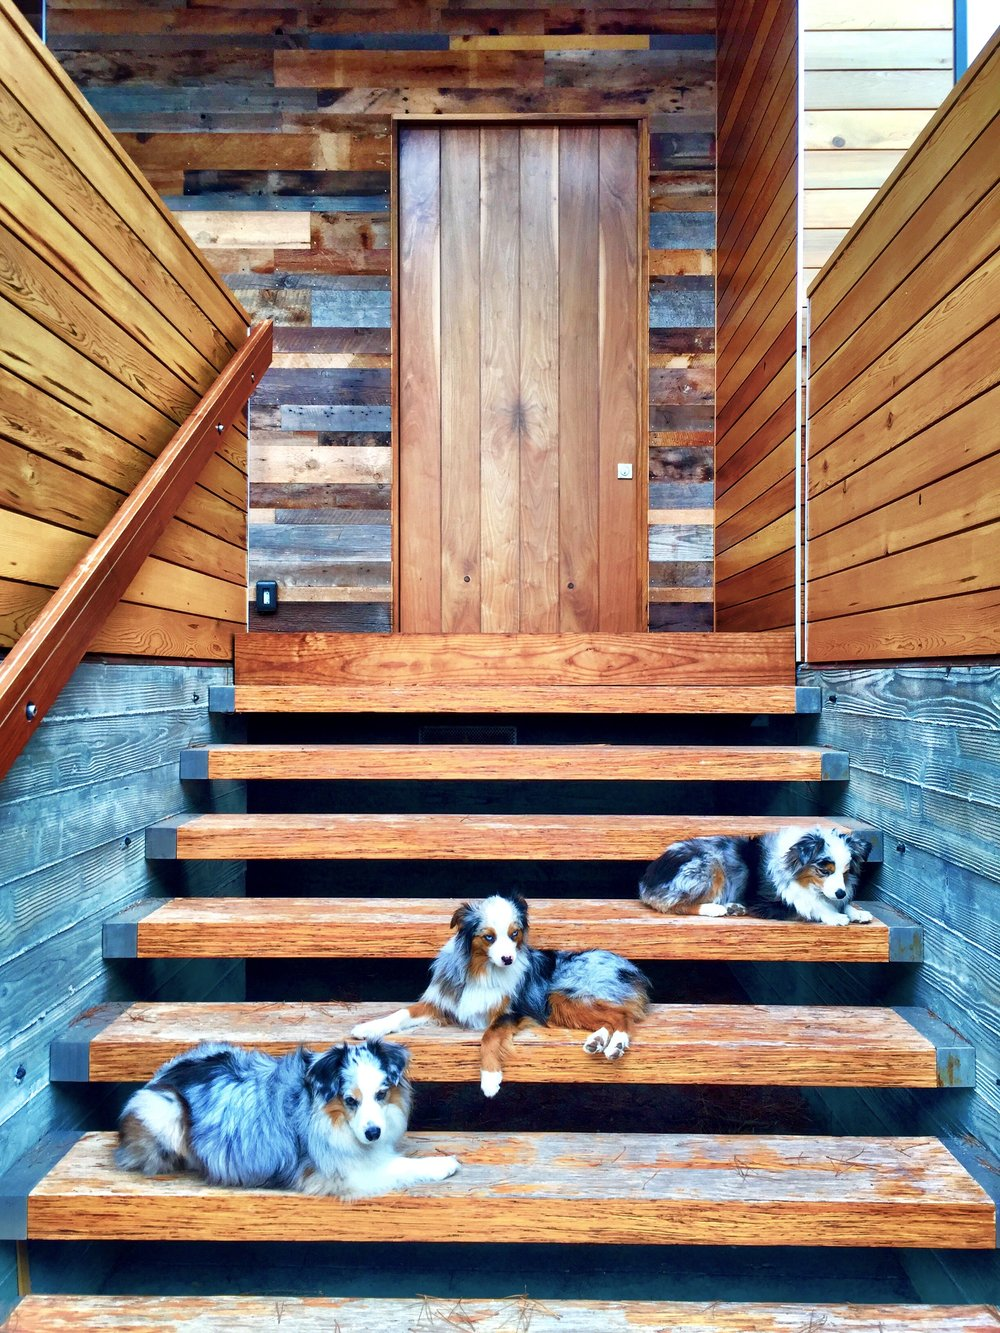 The front entry stairs are made of PSL beams.  Pivoting extra large walnut door and barn wood exterior walls.  And three mini Aussies.